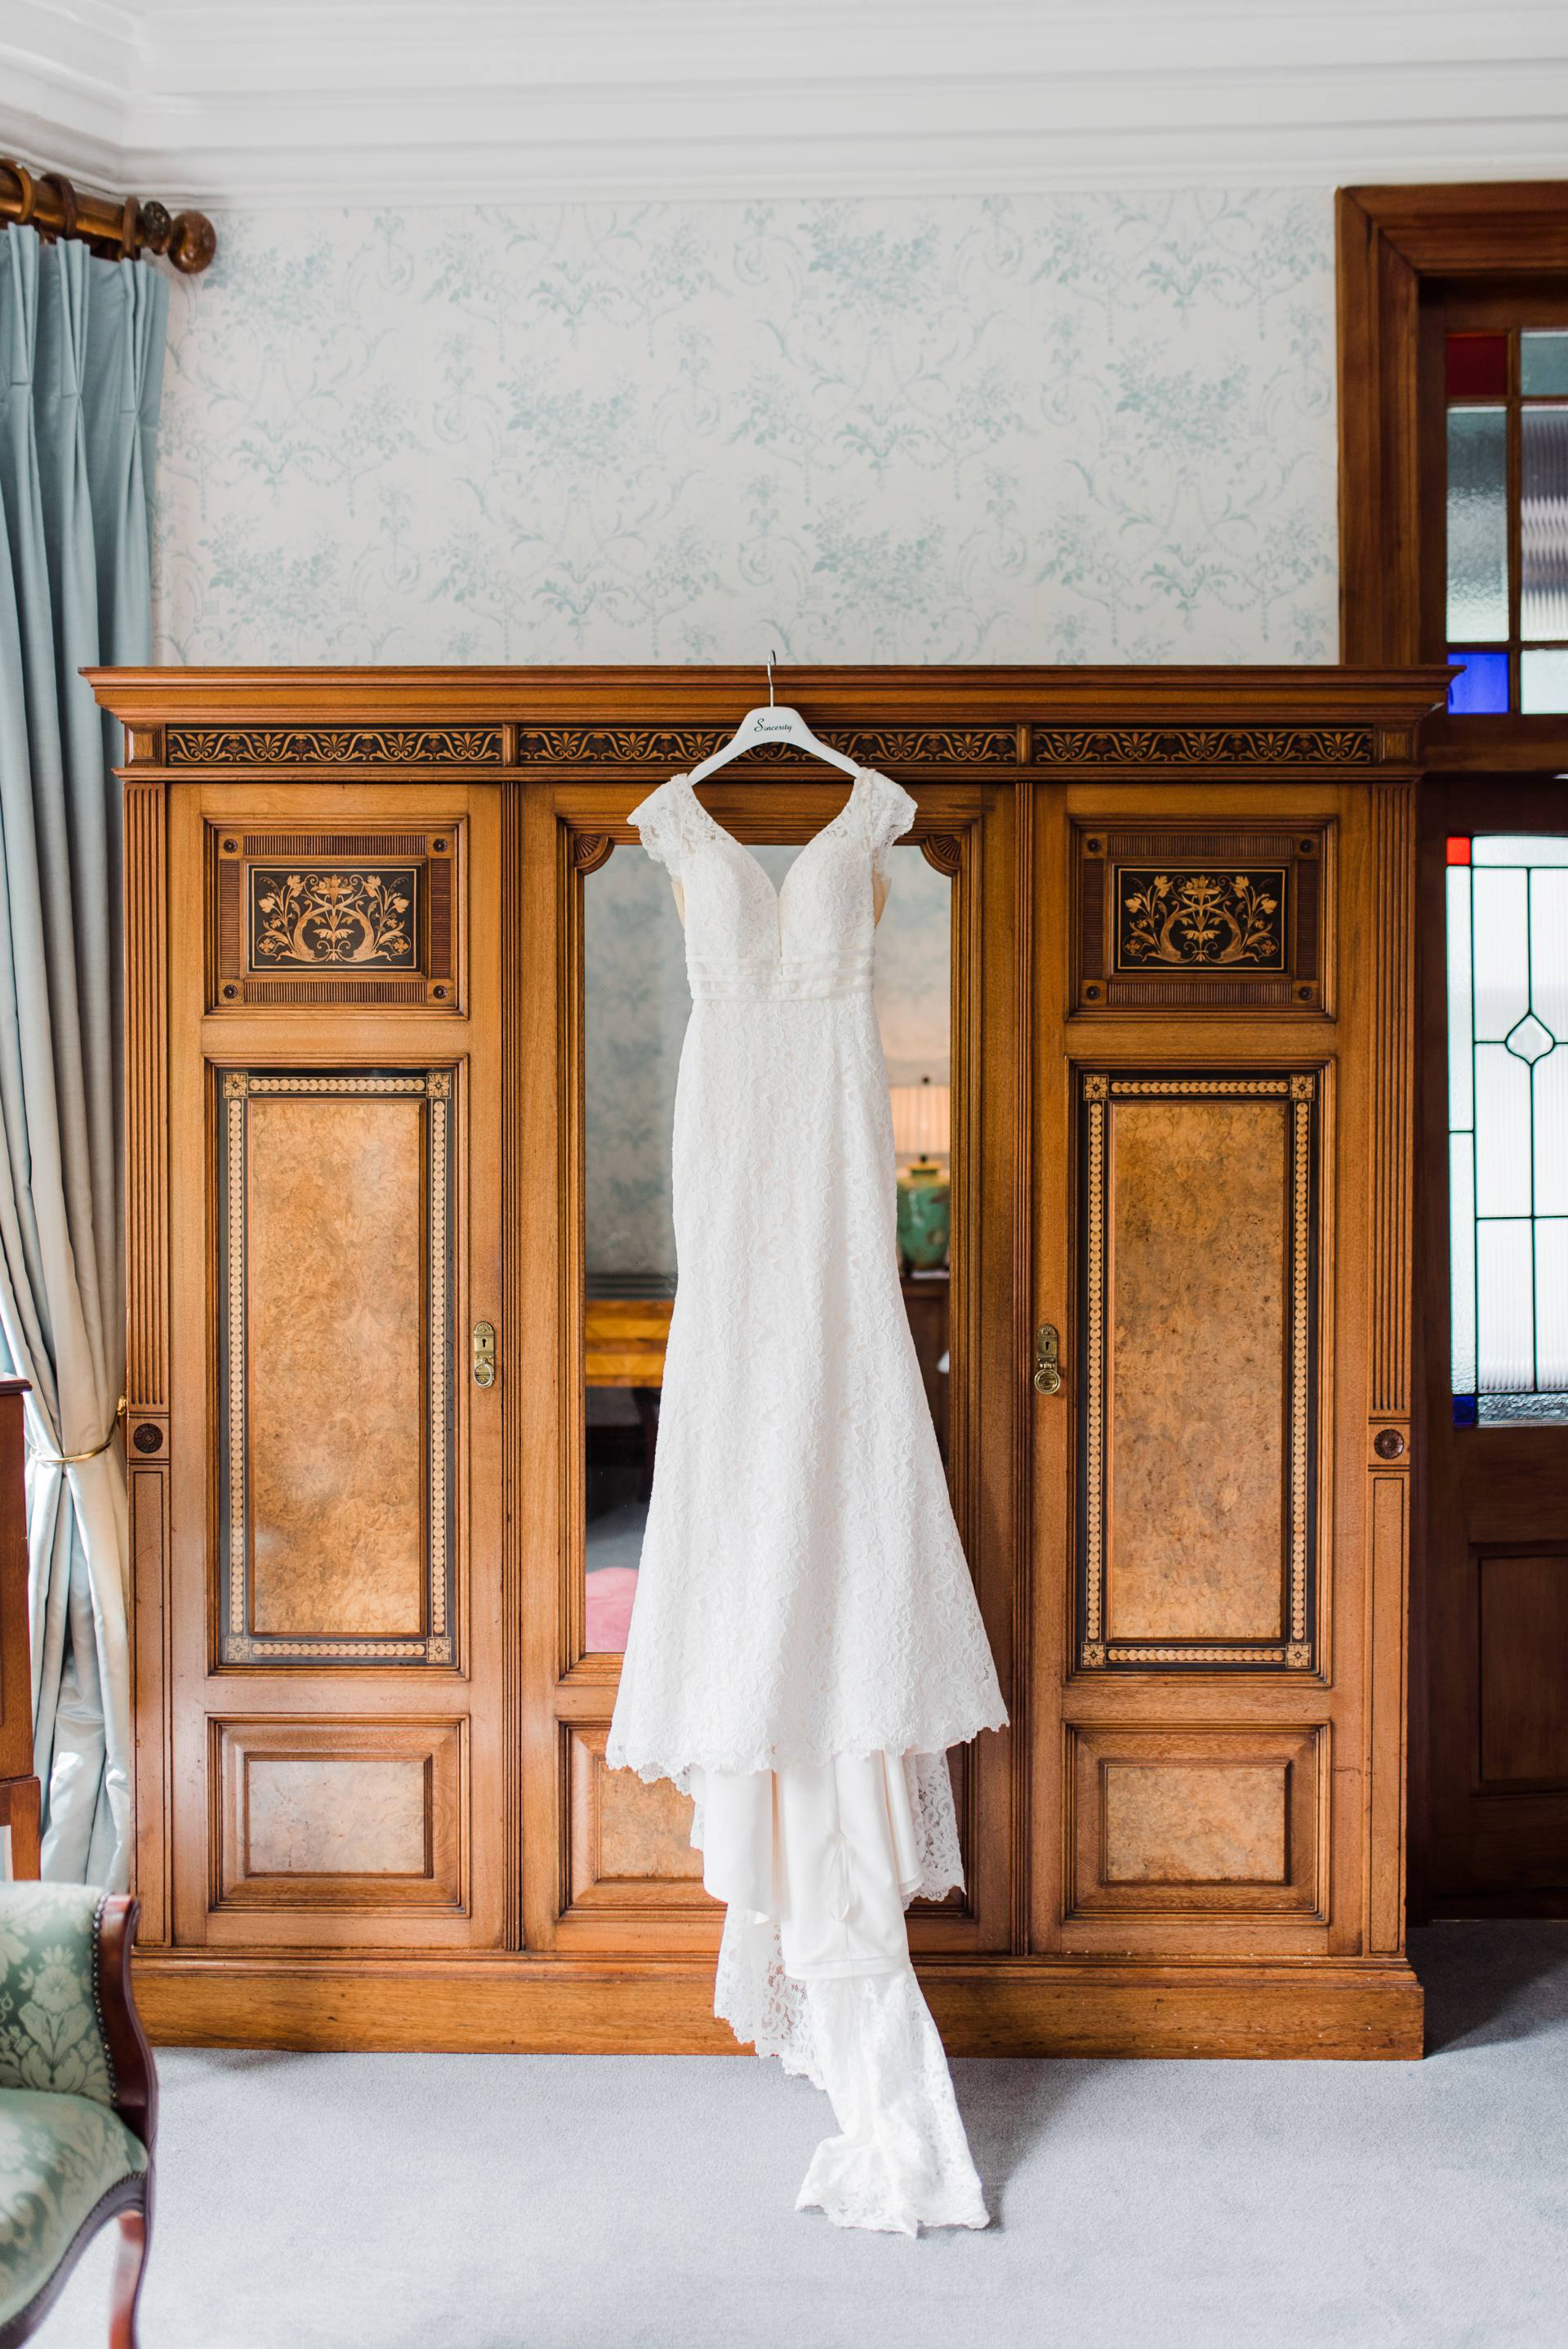 Lace wedding dress hanging on wardrobe